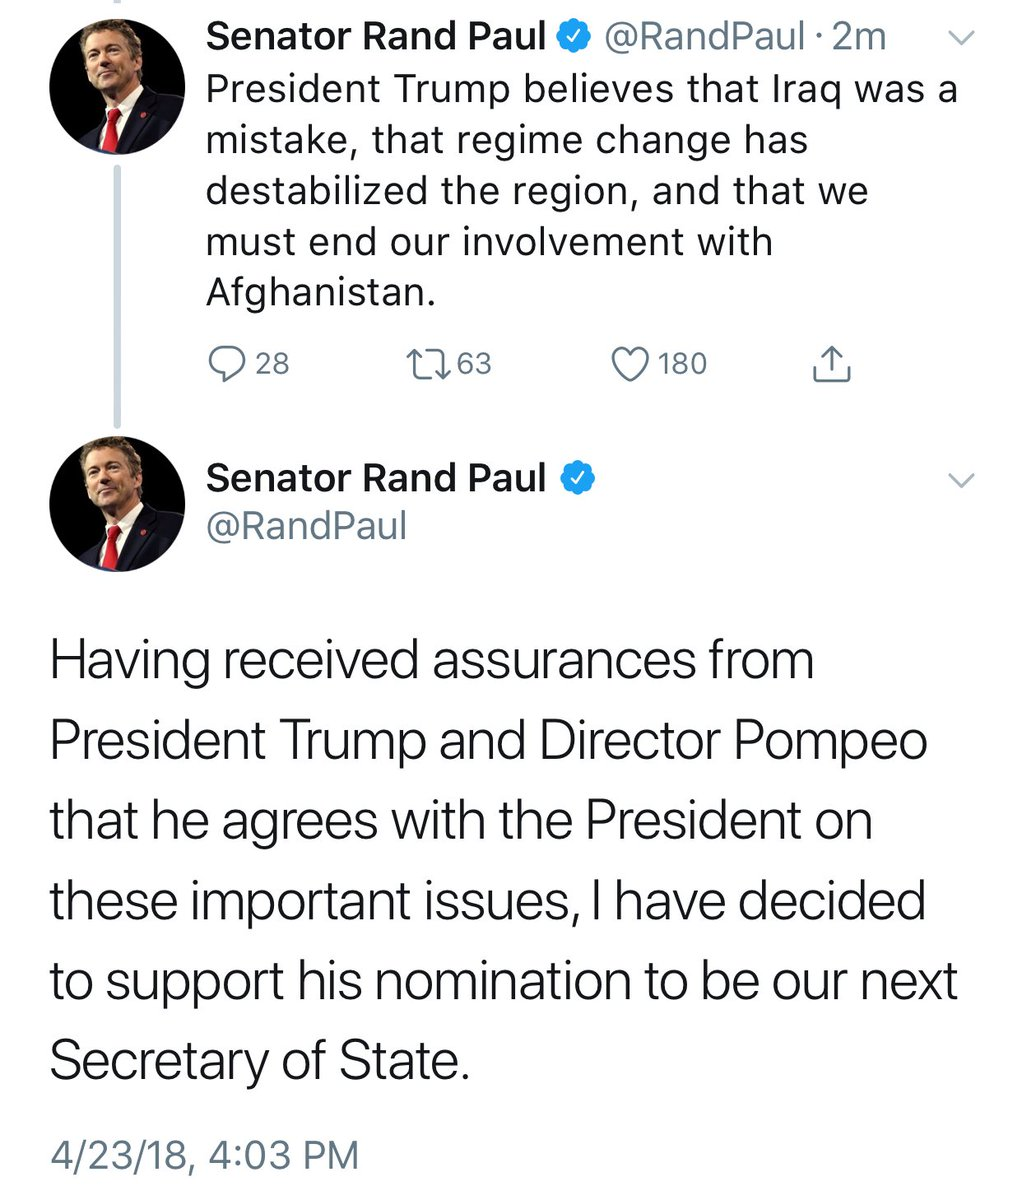 BREAKING NEWS: Sen. Rand Paul (R-Kentucky) says he will back Mike Pompeo as Secretary of State